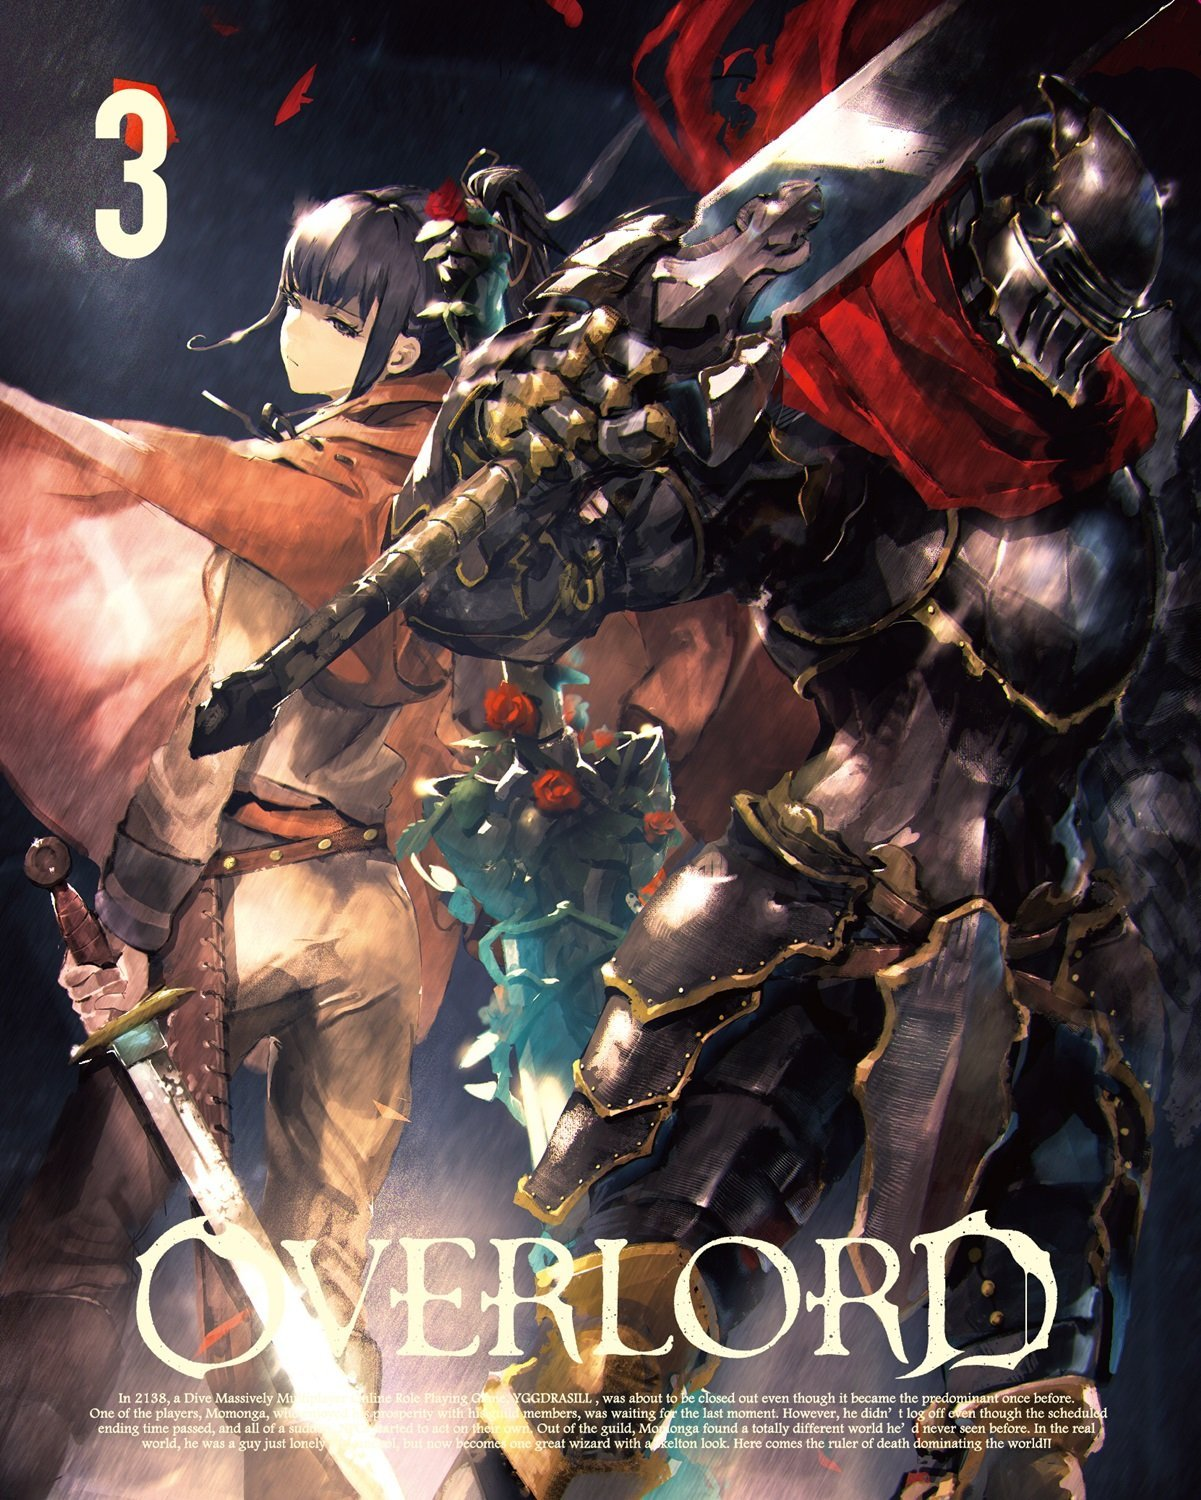 Overlord Blu-ray 03 Special | Overlord Wiki | FANDOM powered by Wikia